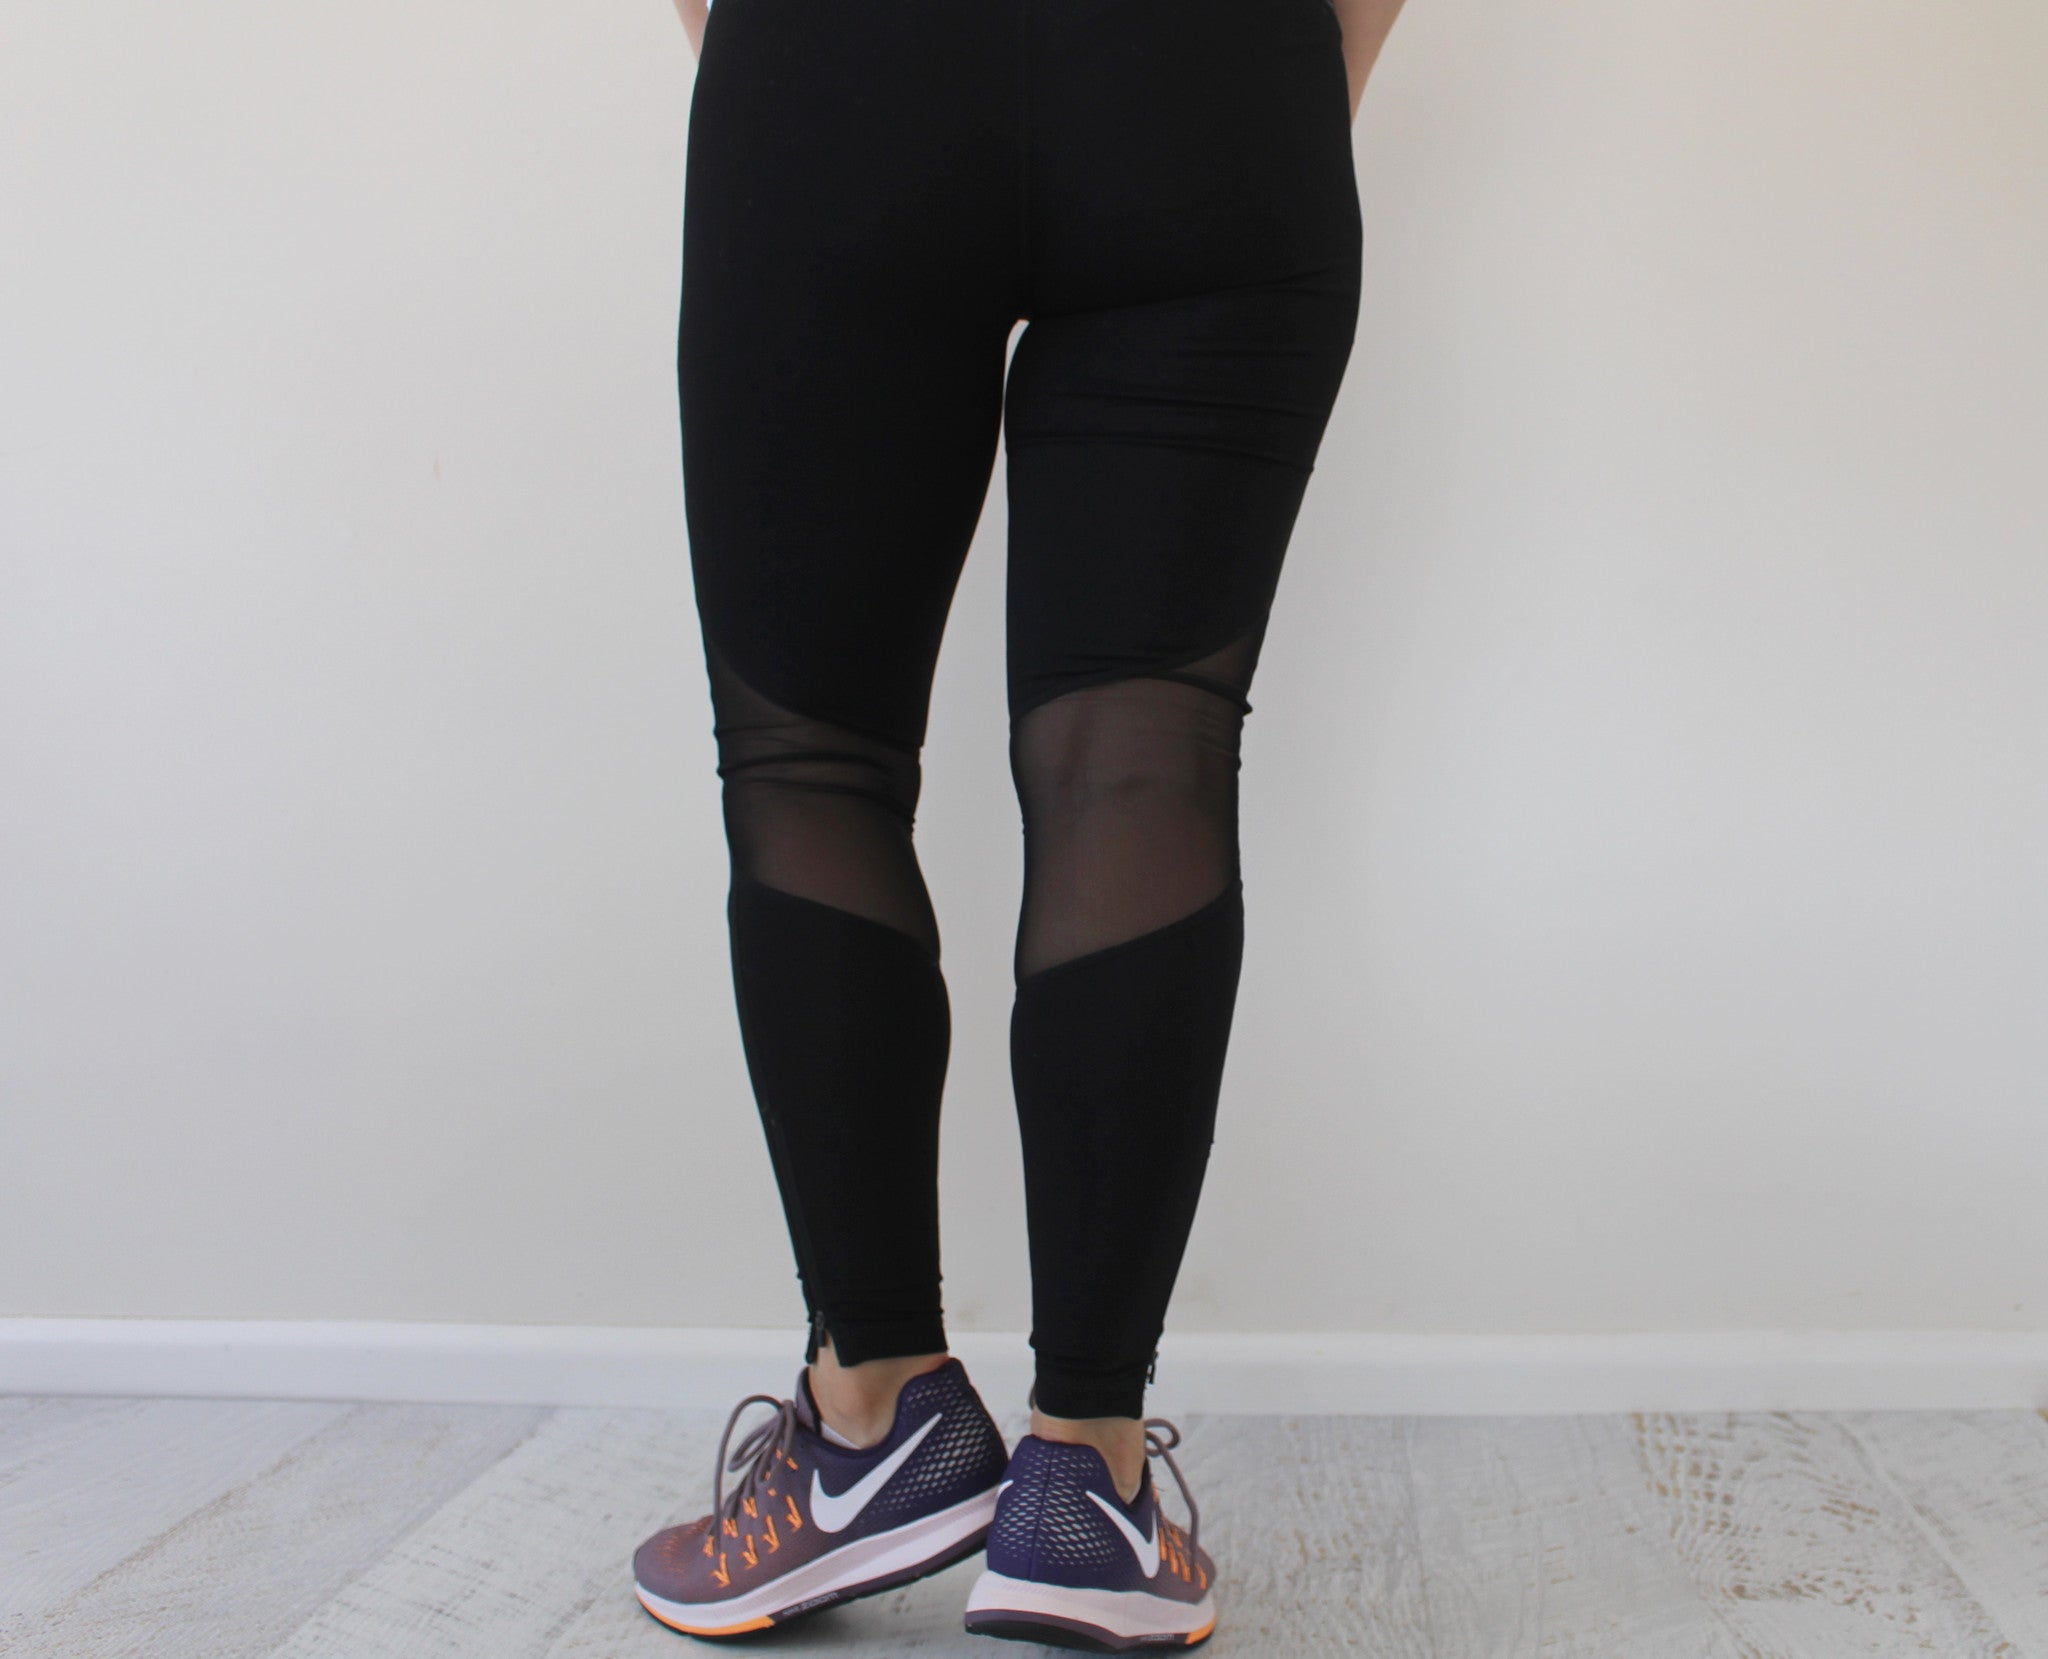 high waisted activewear legging postpartum pregnancy over the belly pregnant flatly style fashion fitness